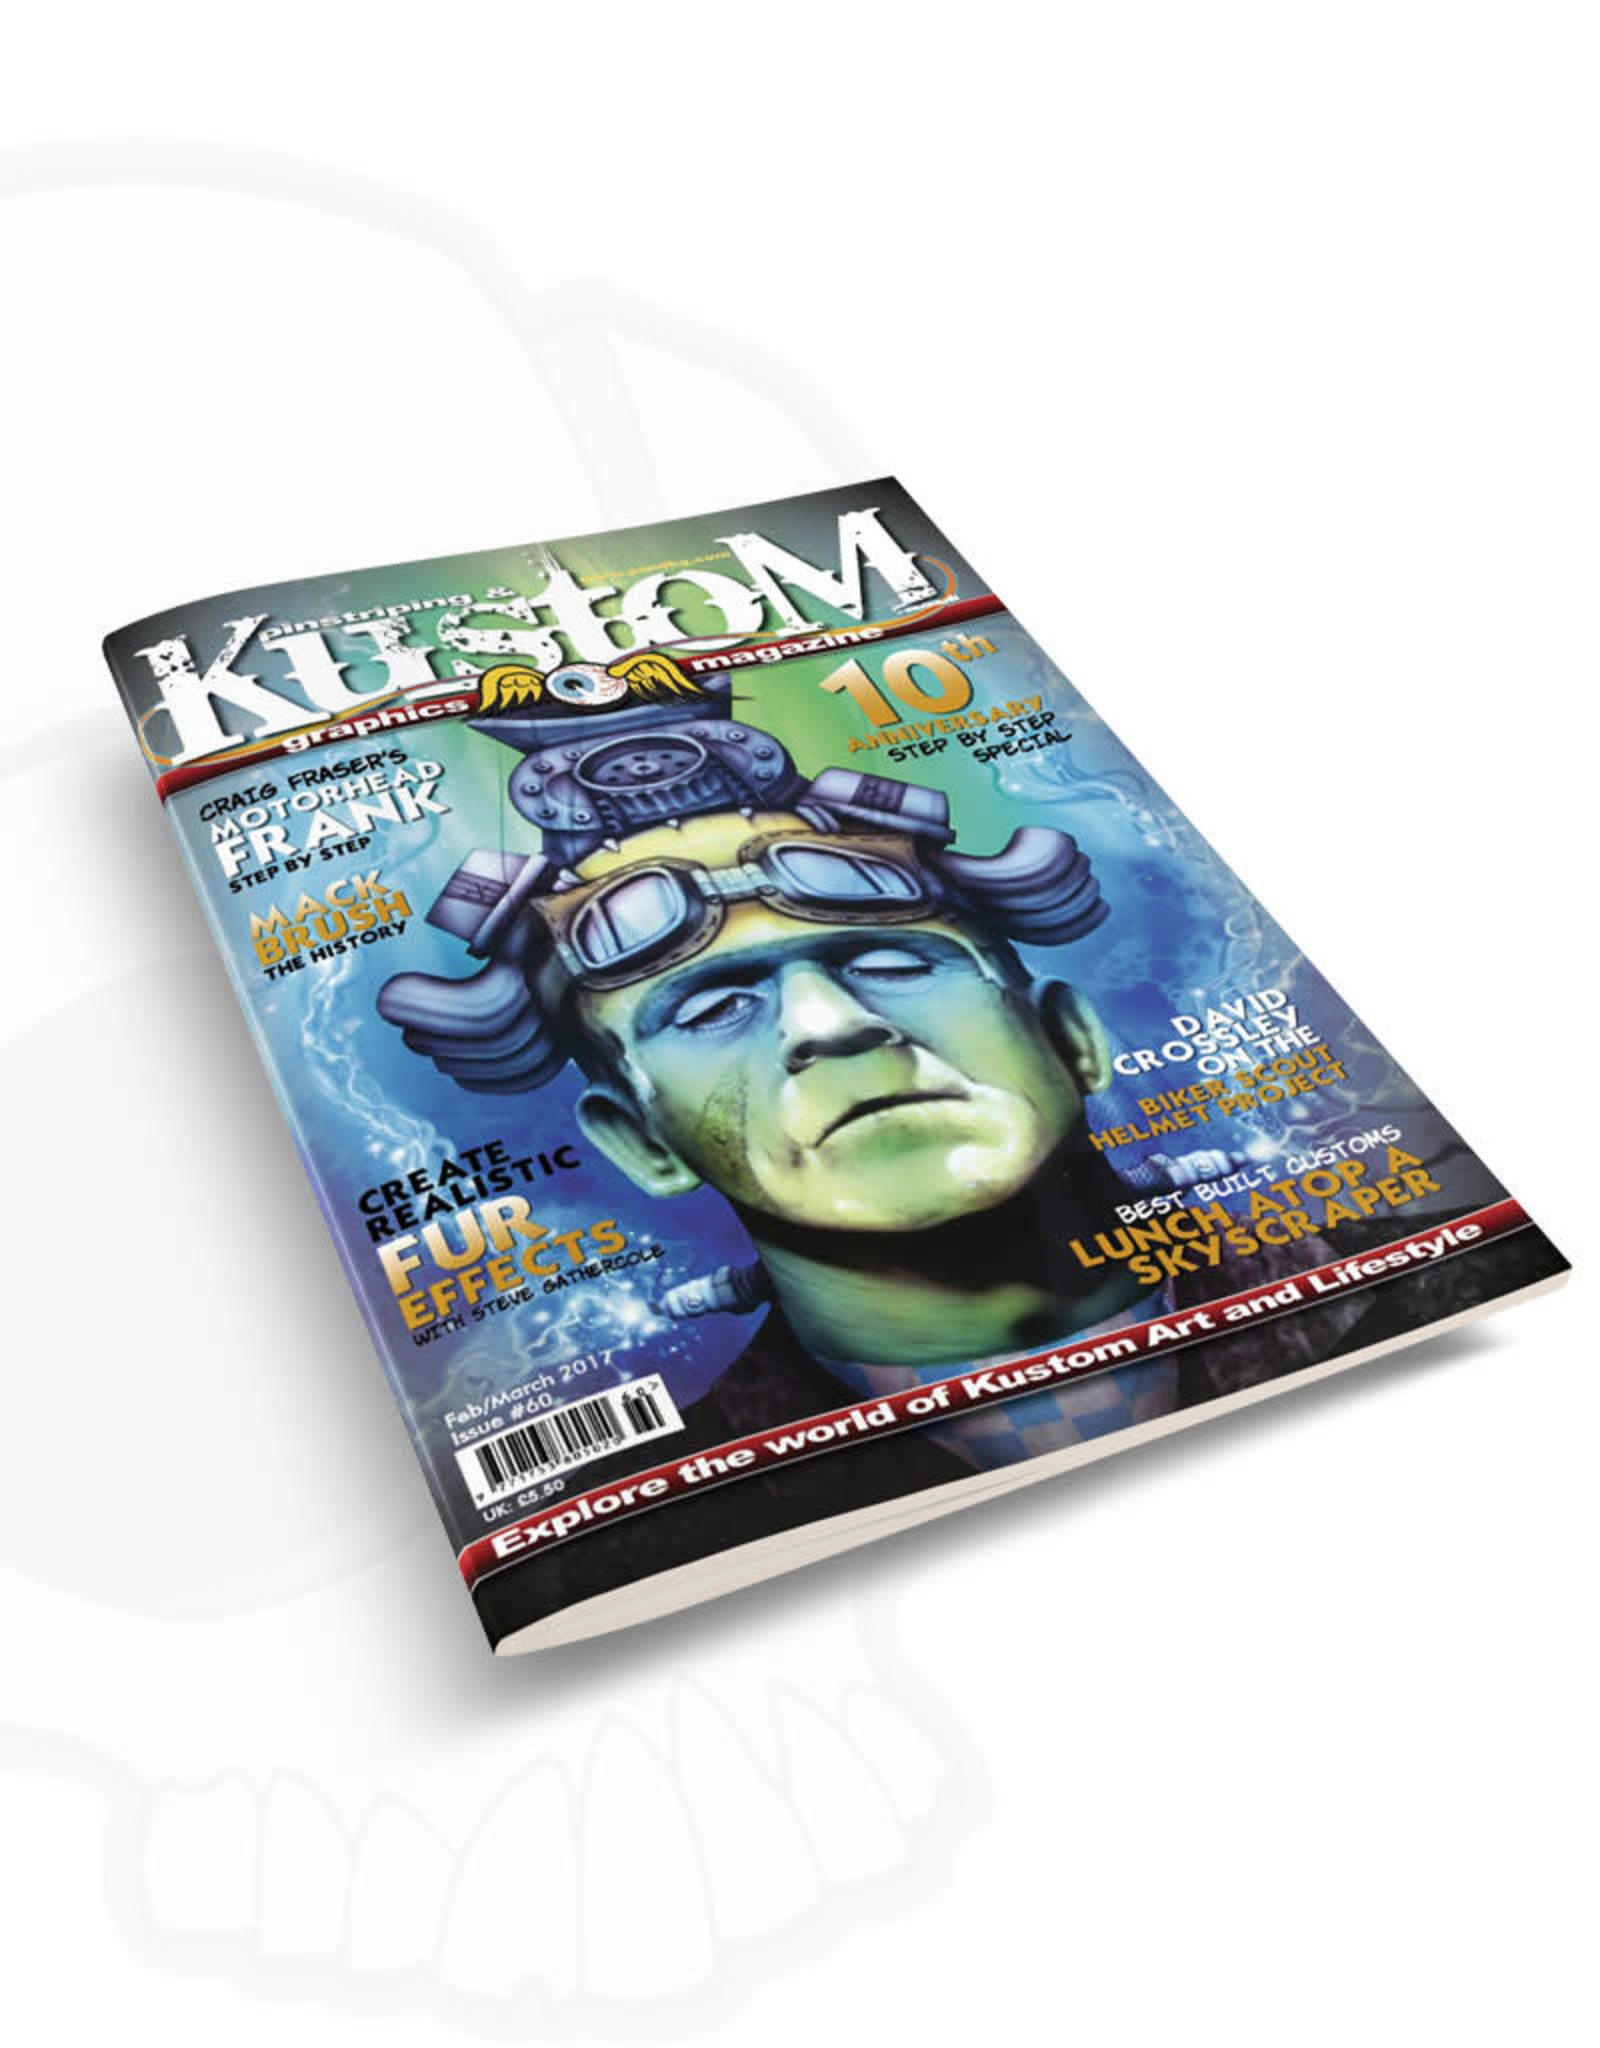 Pinstriping & Kustom graphics magazine Pinstriping & Kustom graphics magazine #60